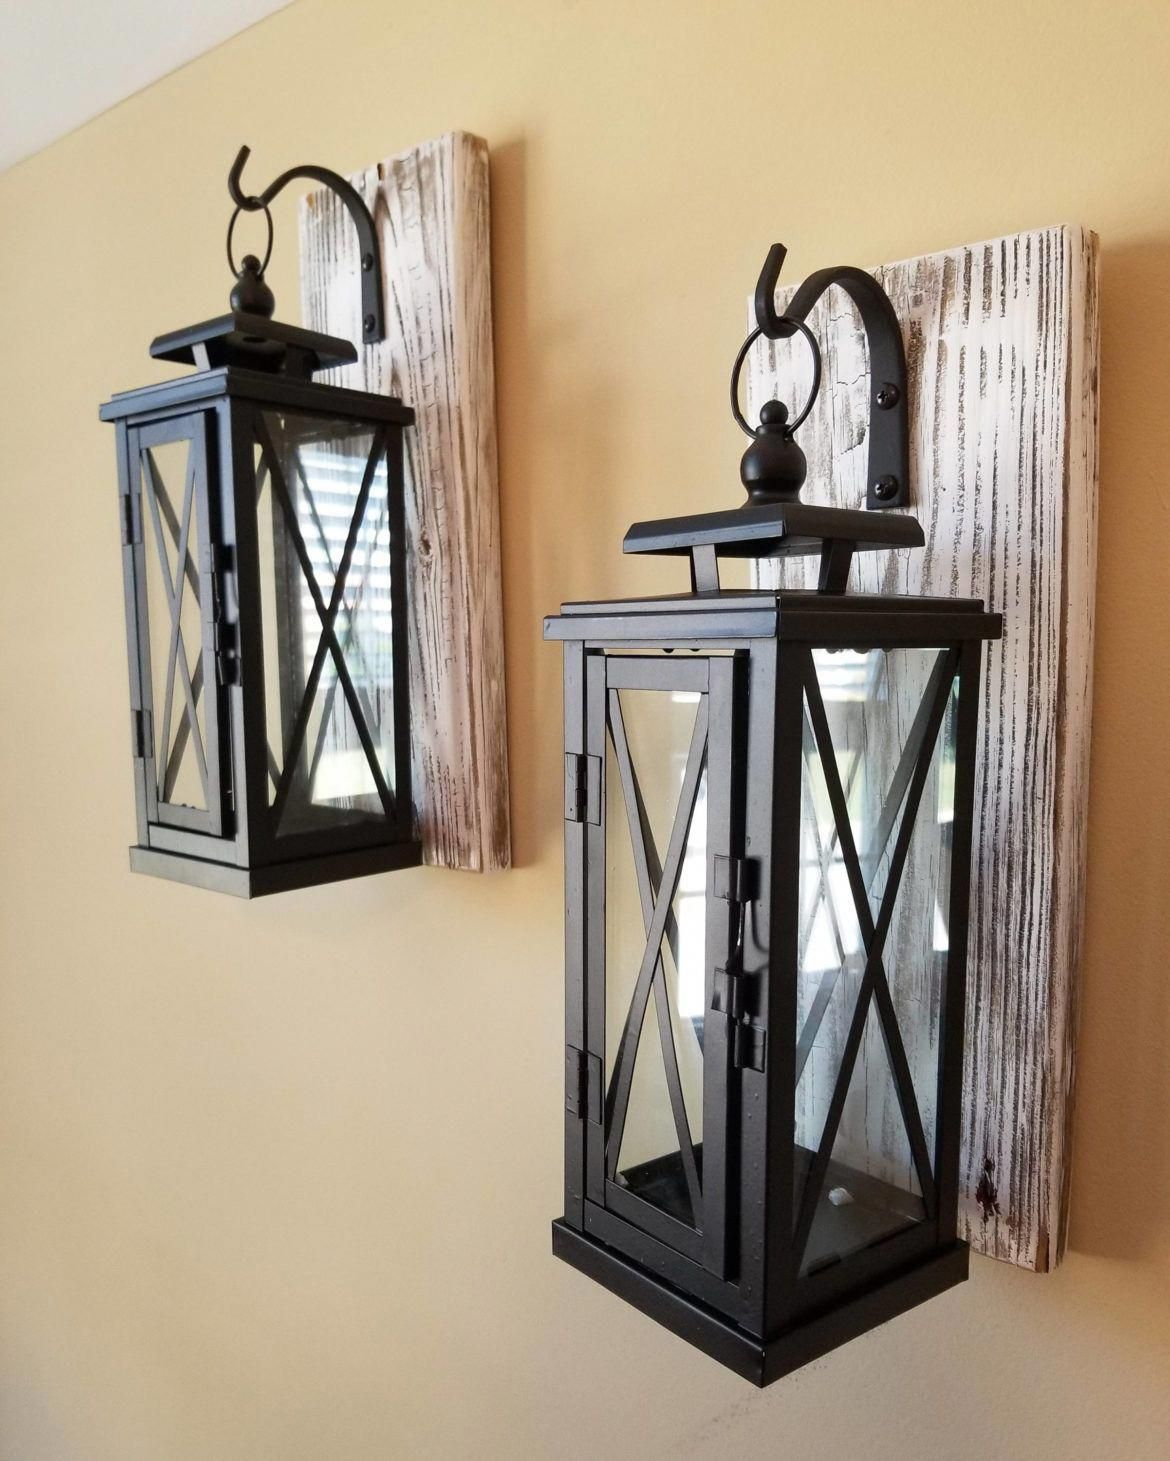 Diy Home Decor Really Resourceful Summary 7065083821 A Glamorous Home Styling Tactic And Examples F Farmhouse Wall Sconces Wall Mount Lantern Wooden Sconces